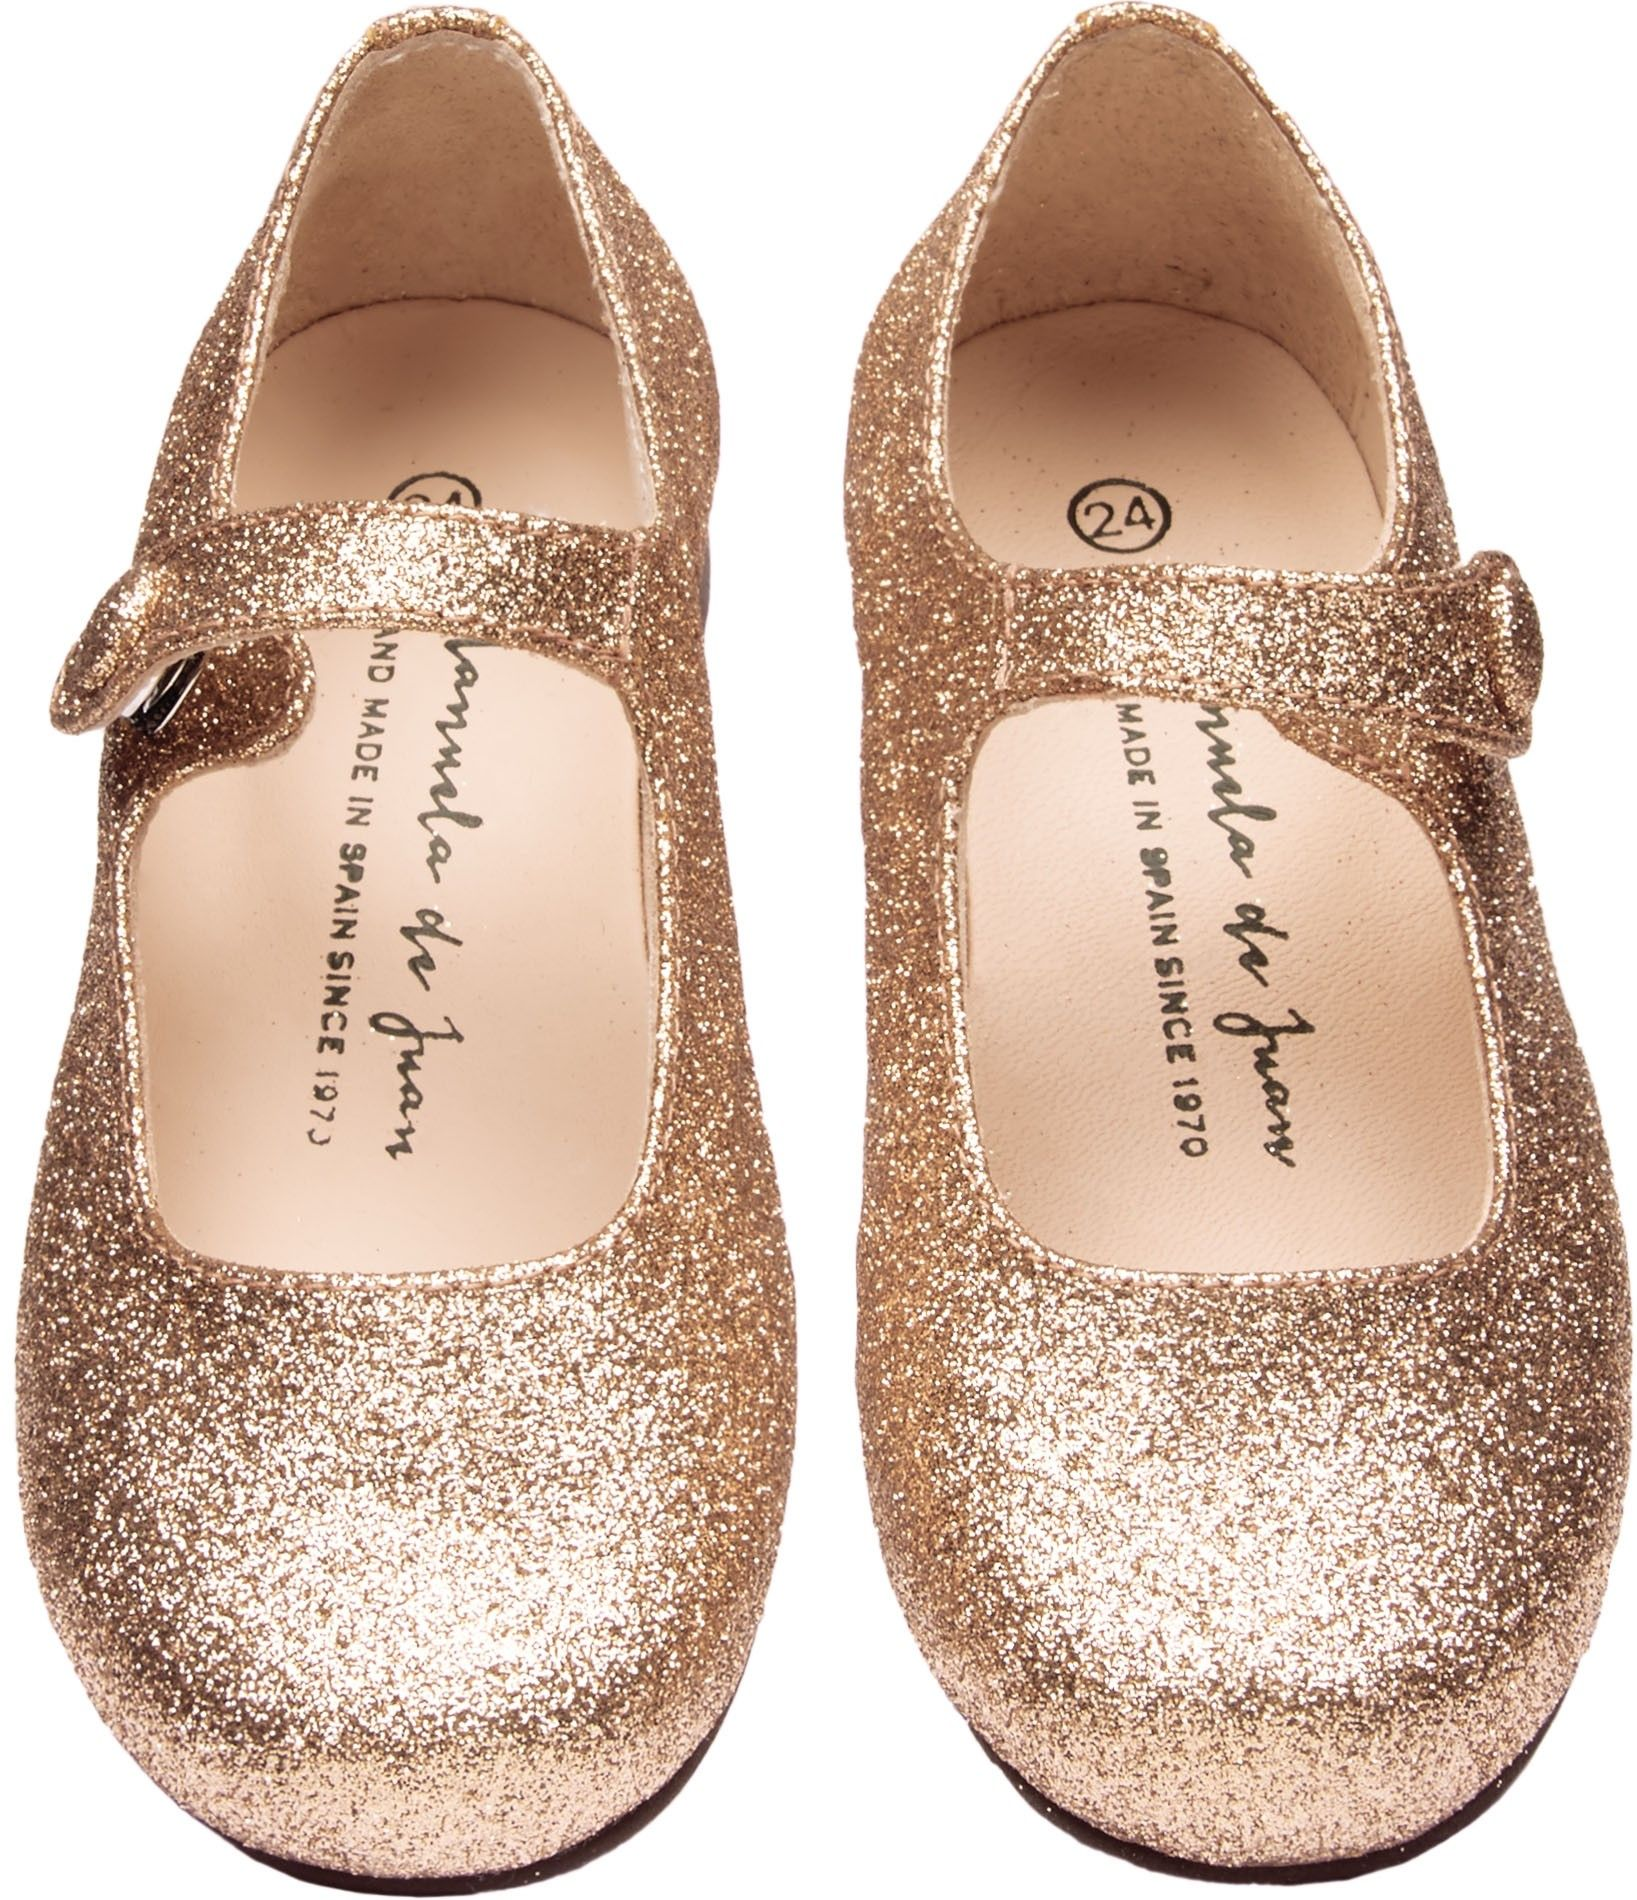 JUST IN Shop The Manuela De Juan Girls Mimi Shoes In Gold Browse